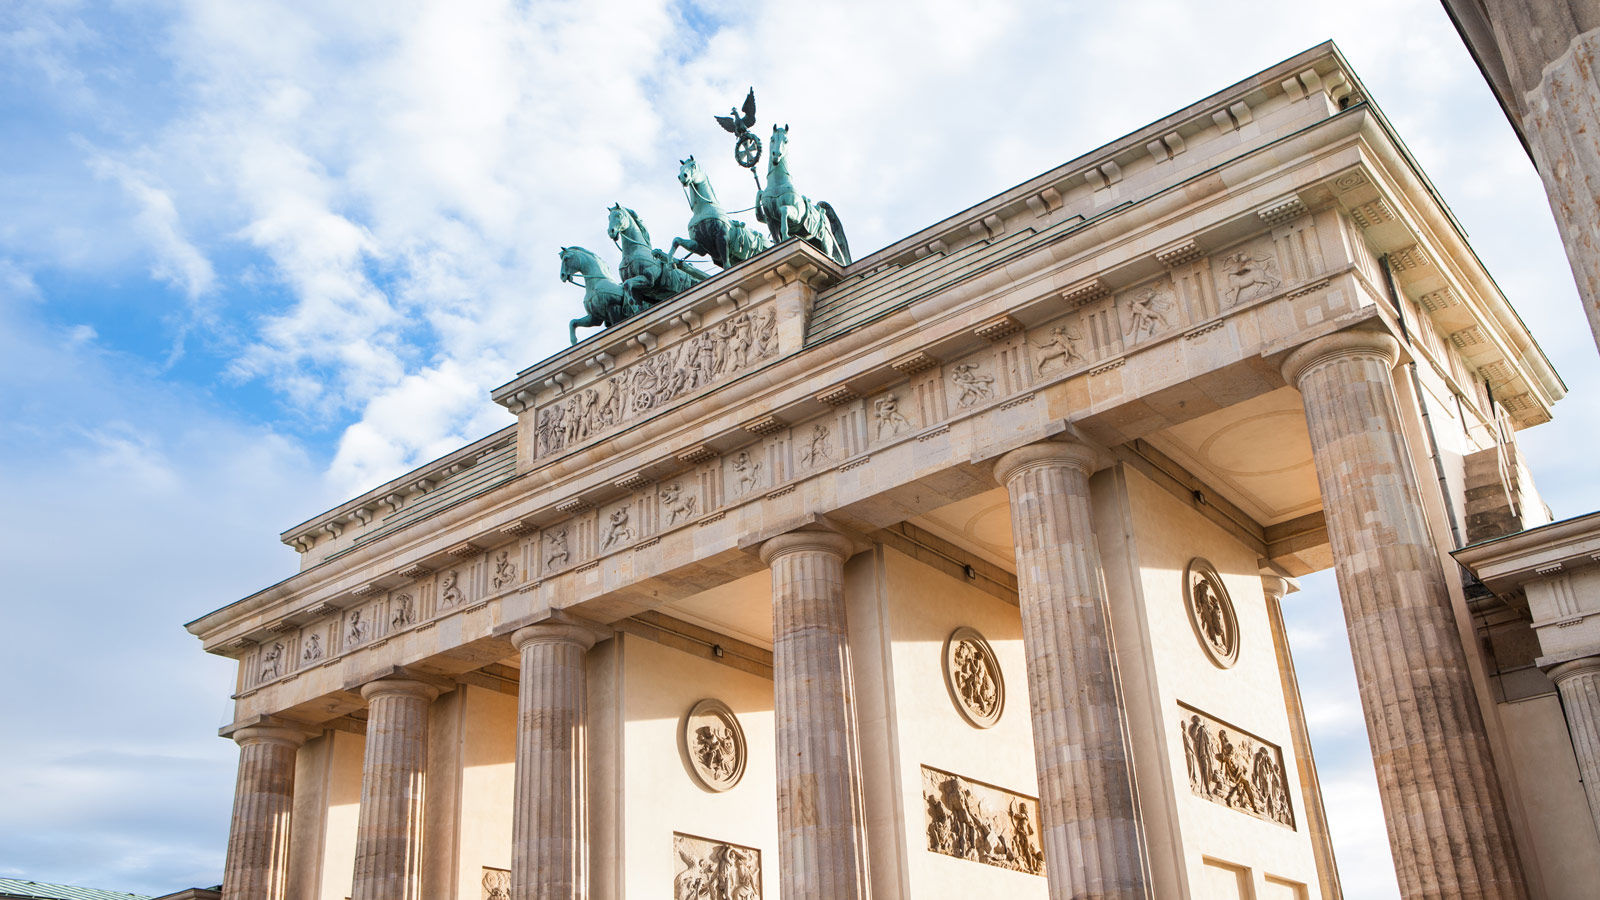 Brandenburg Gate just minutes away from The Westin Grand Berlin hotel